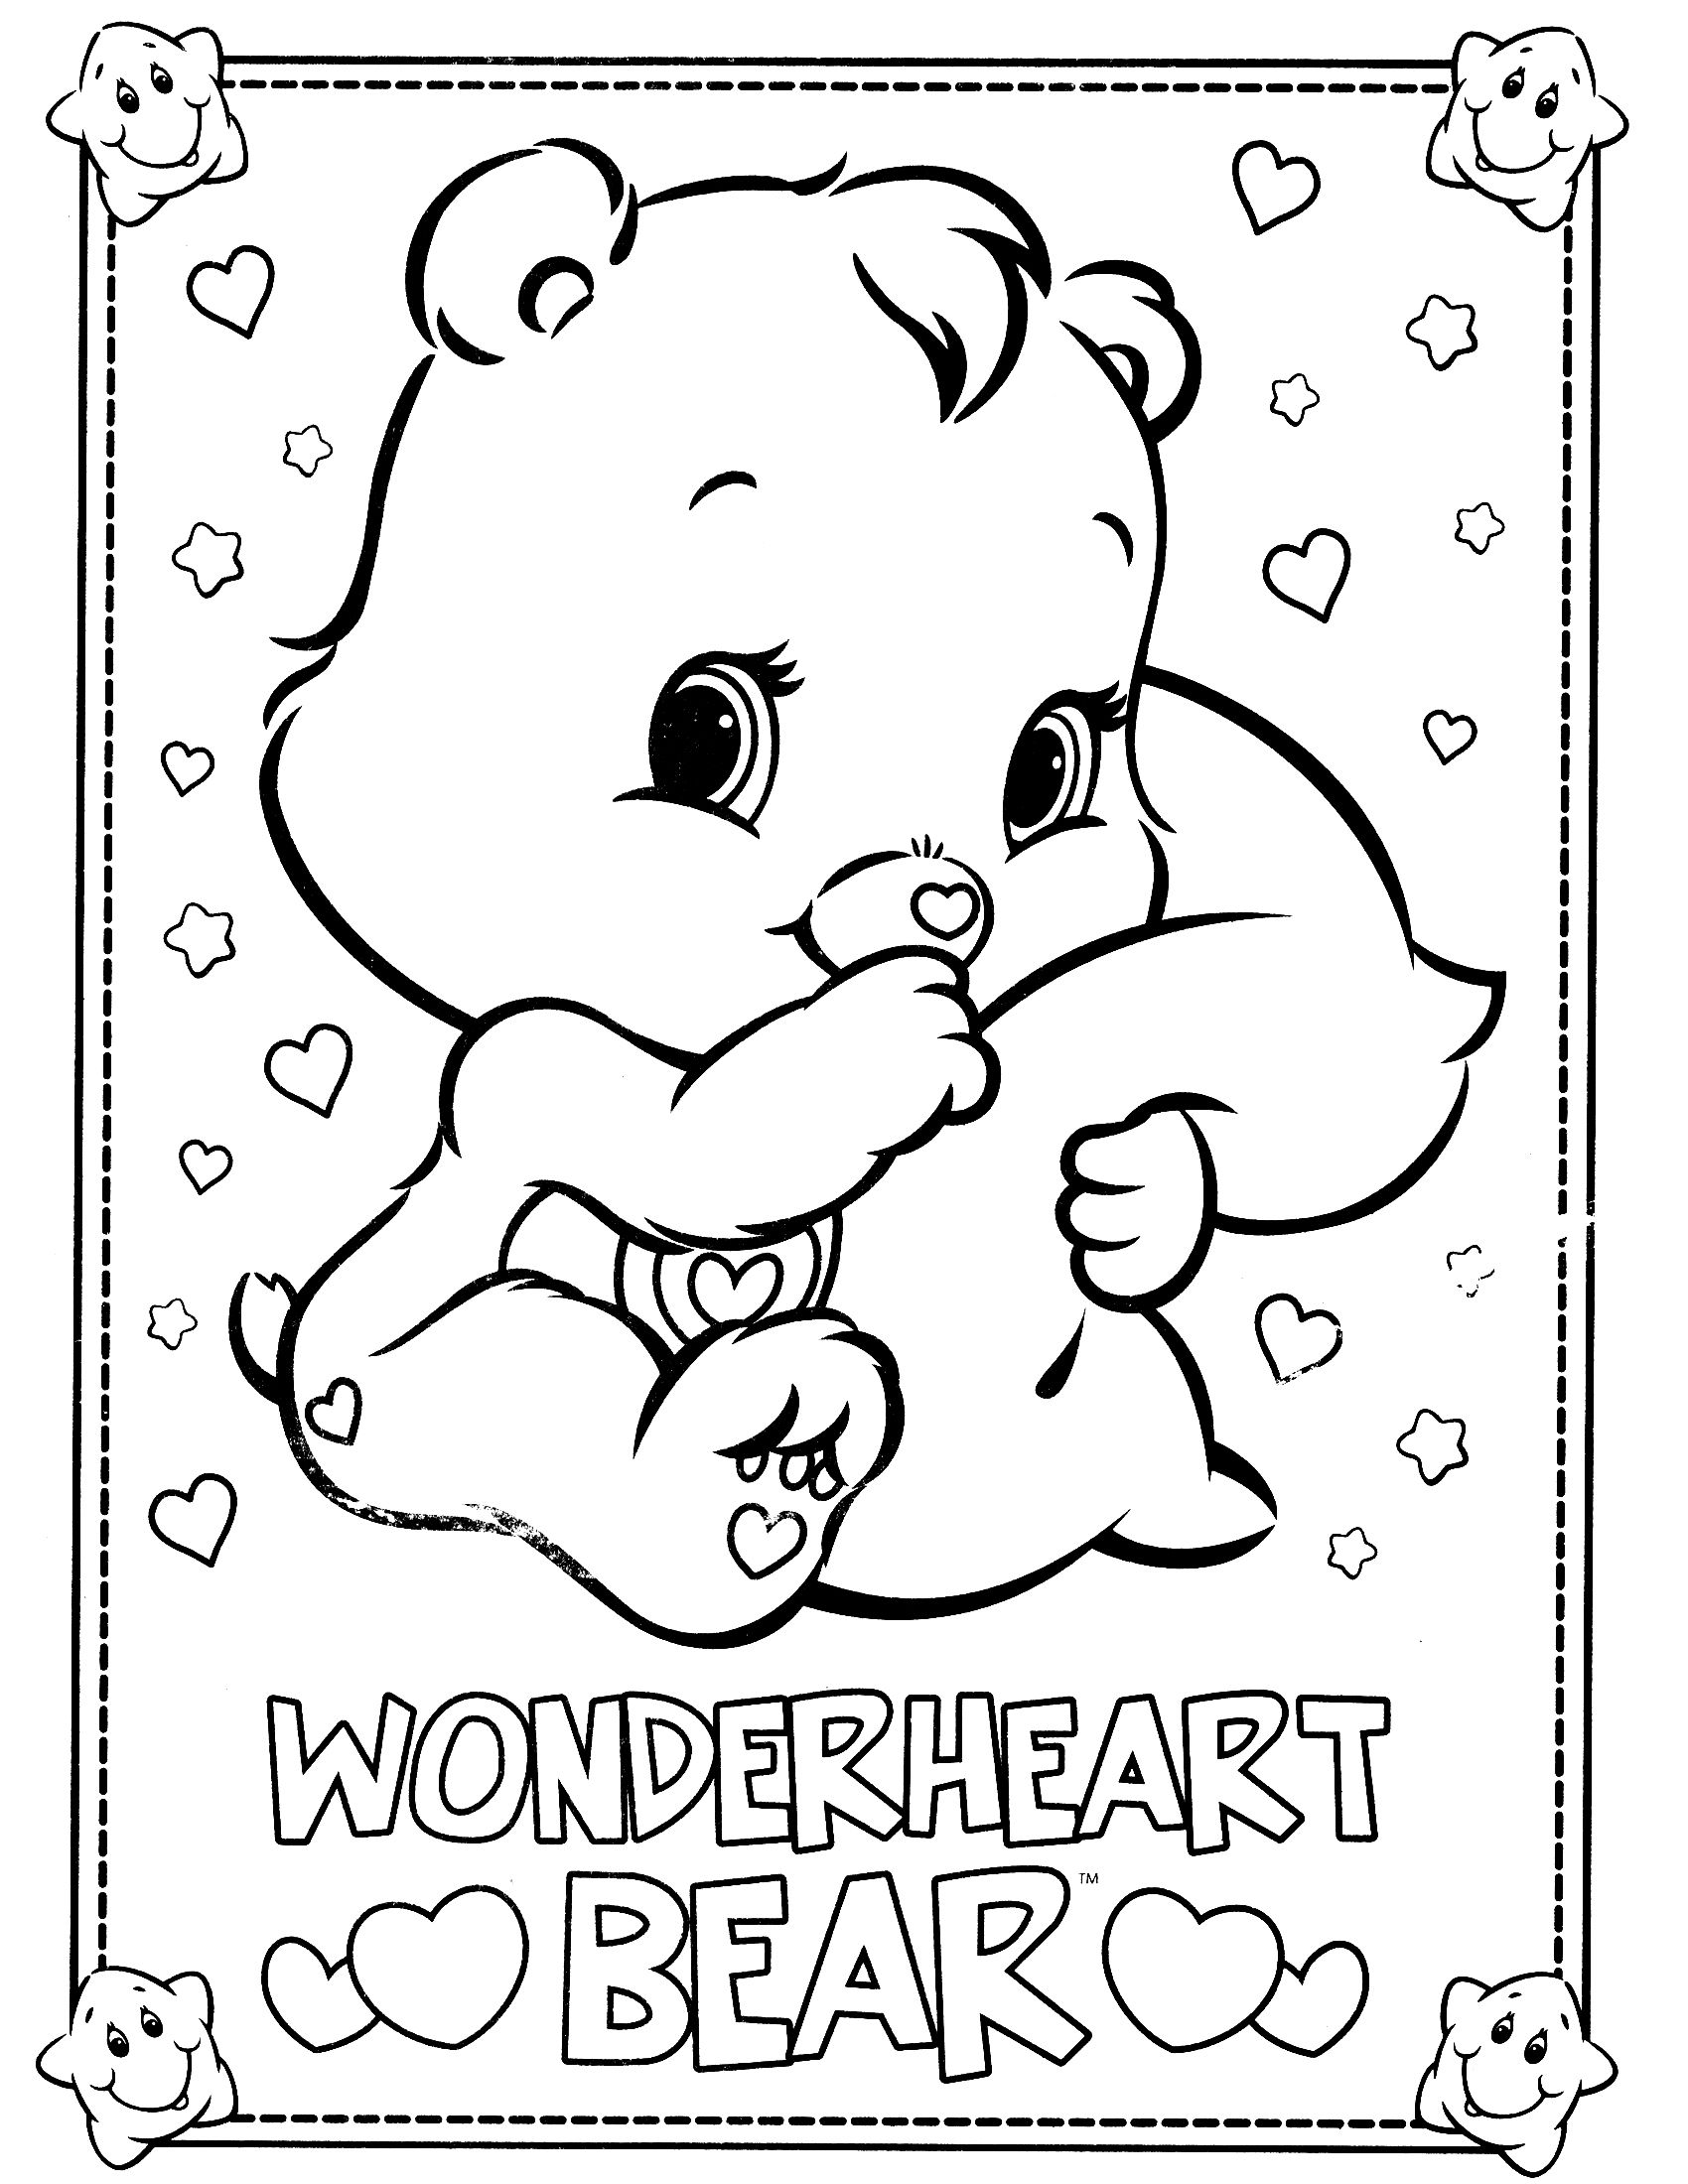 Care Bears Coloring Pages Bing Images Malvorlagen zum